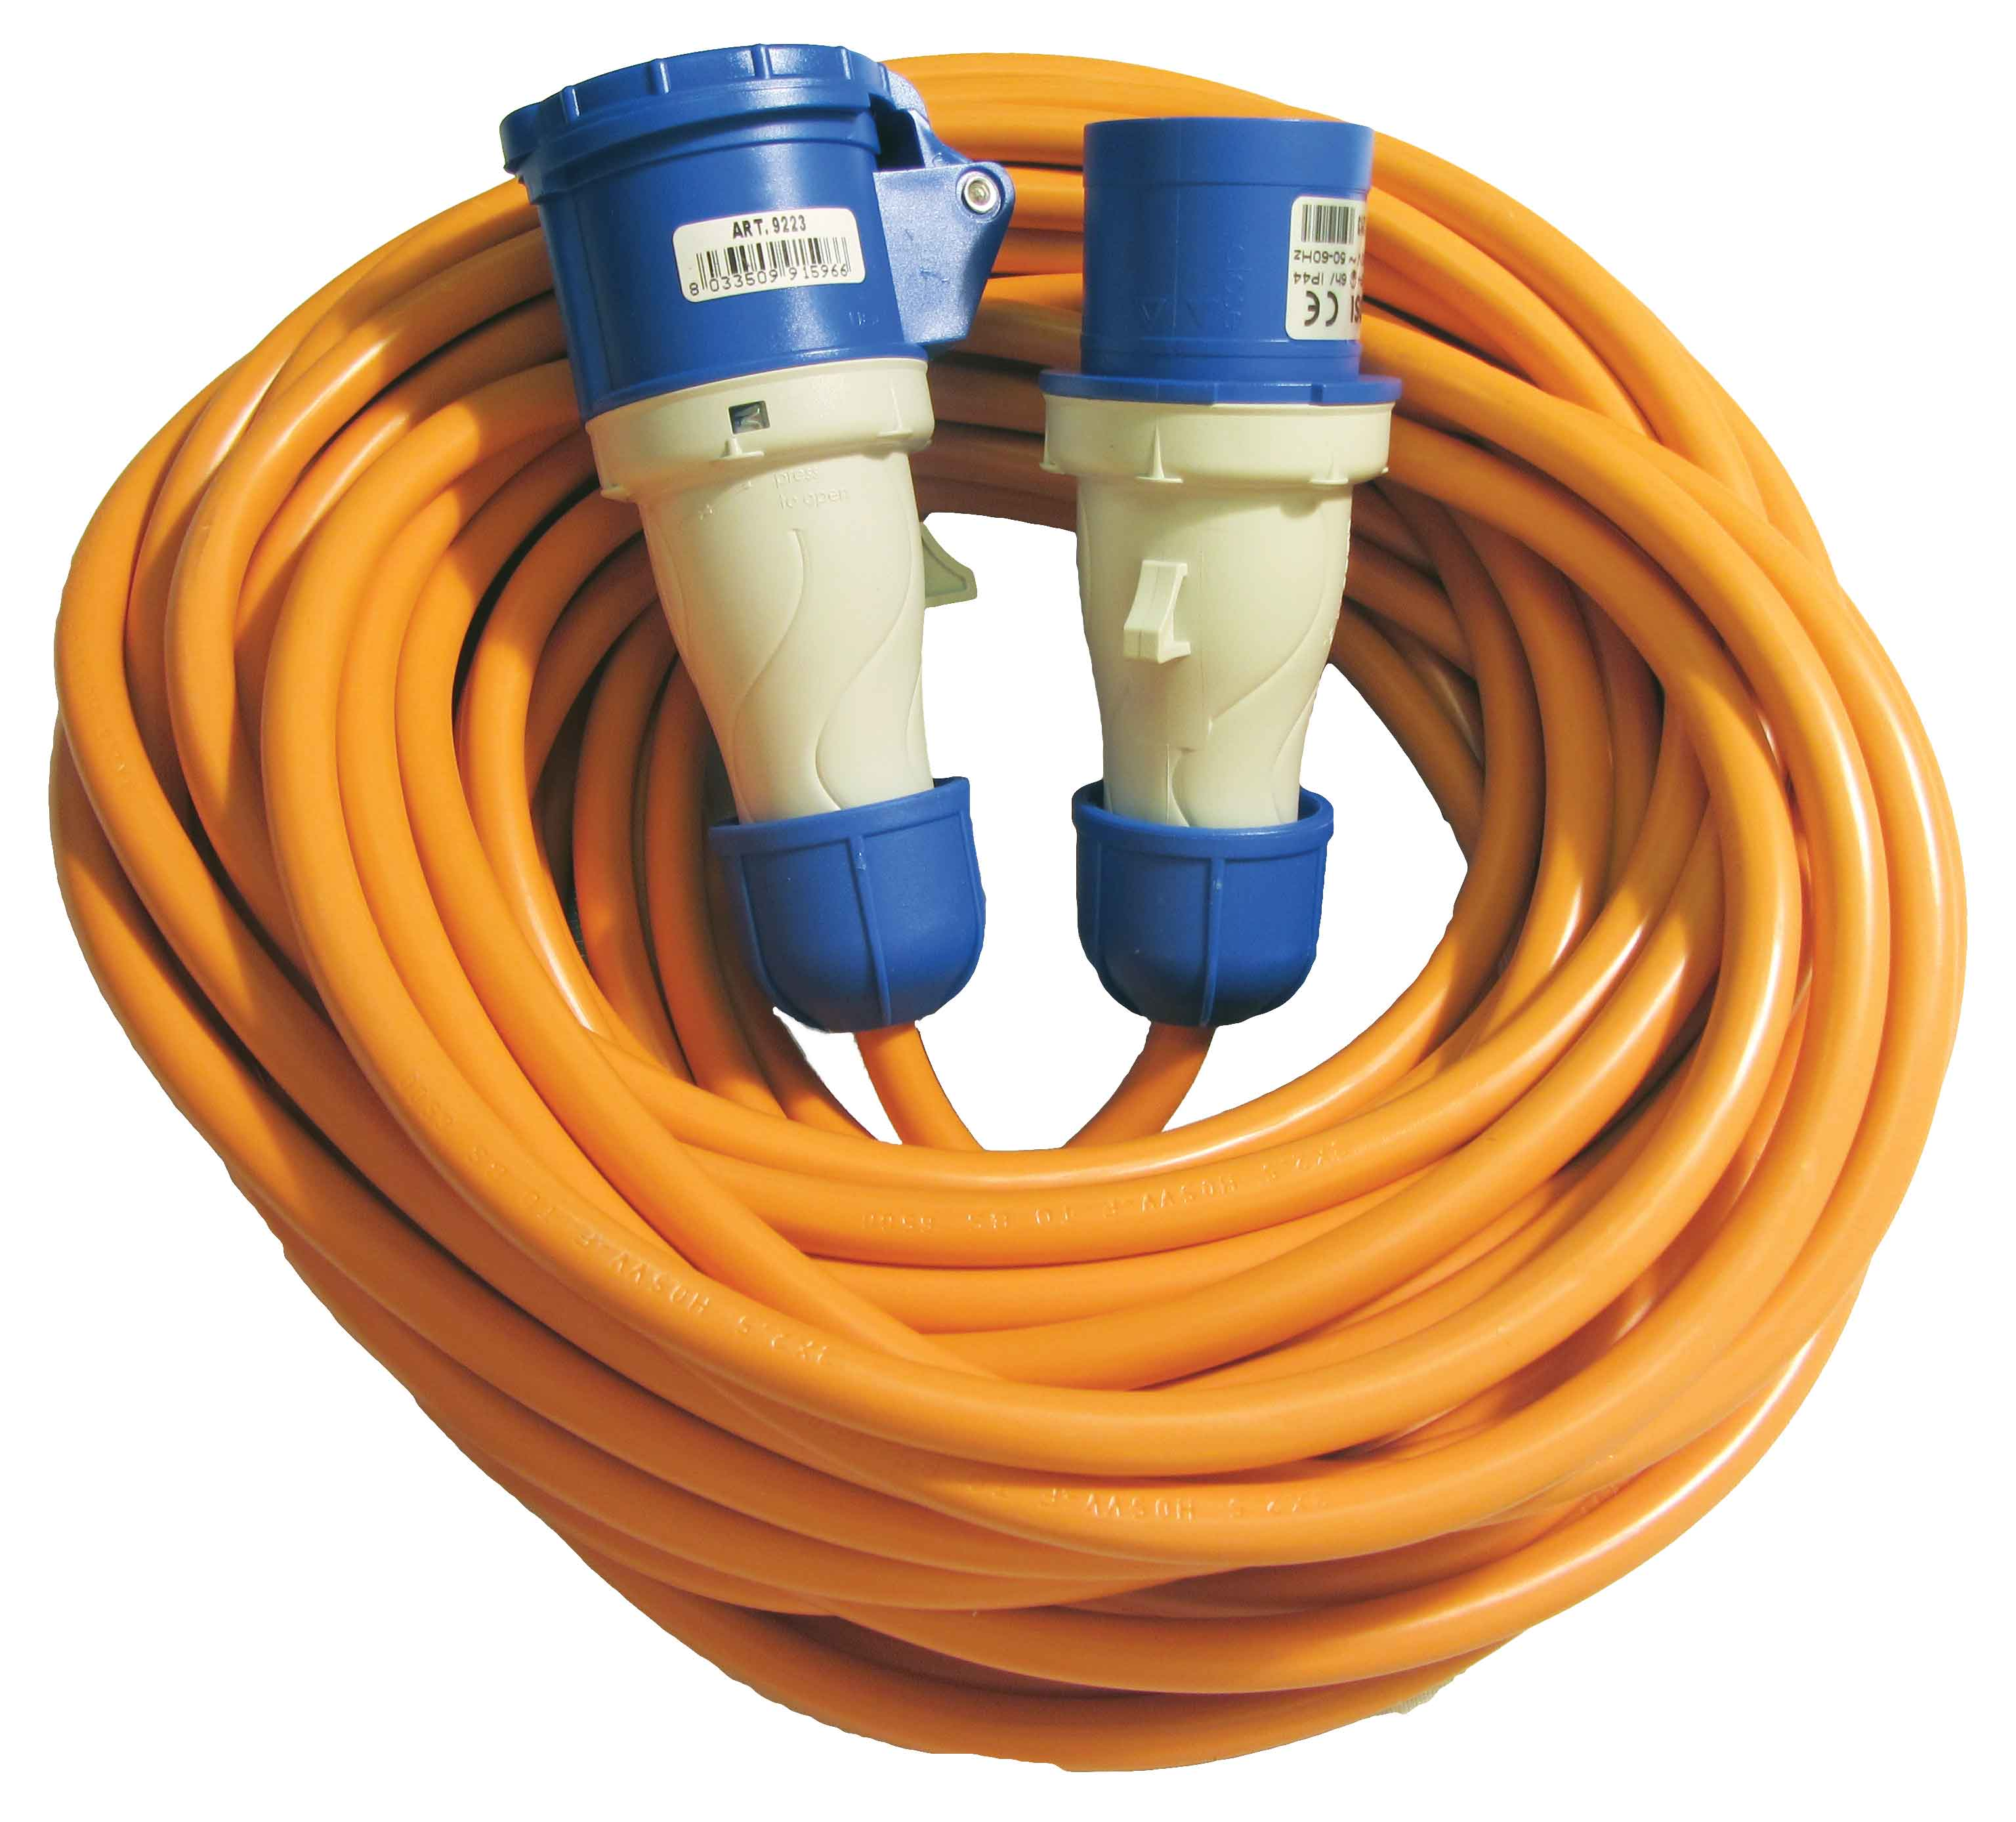 Caravan and Motorhome 240V Mains Cable Plugs Sockets and Installation Products